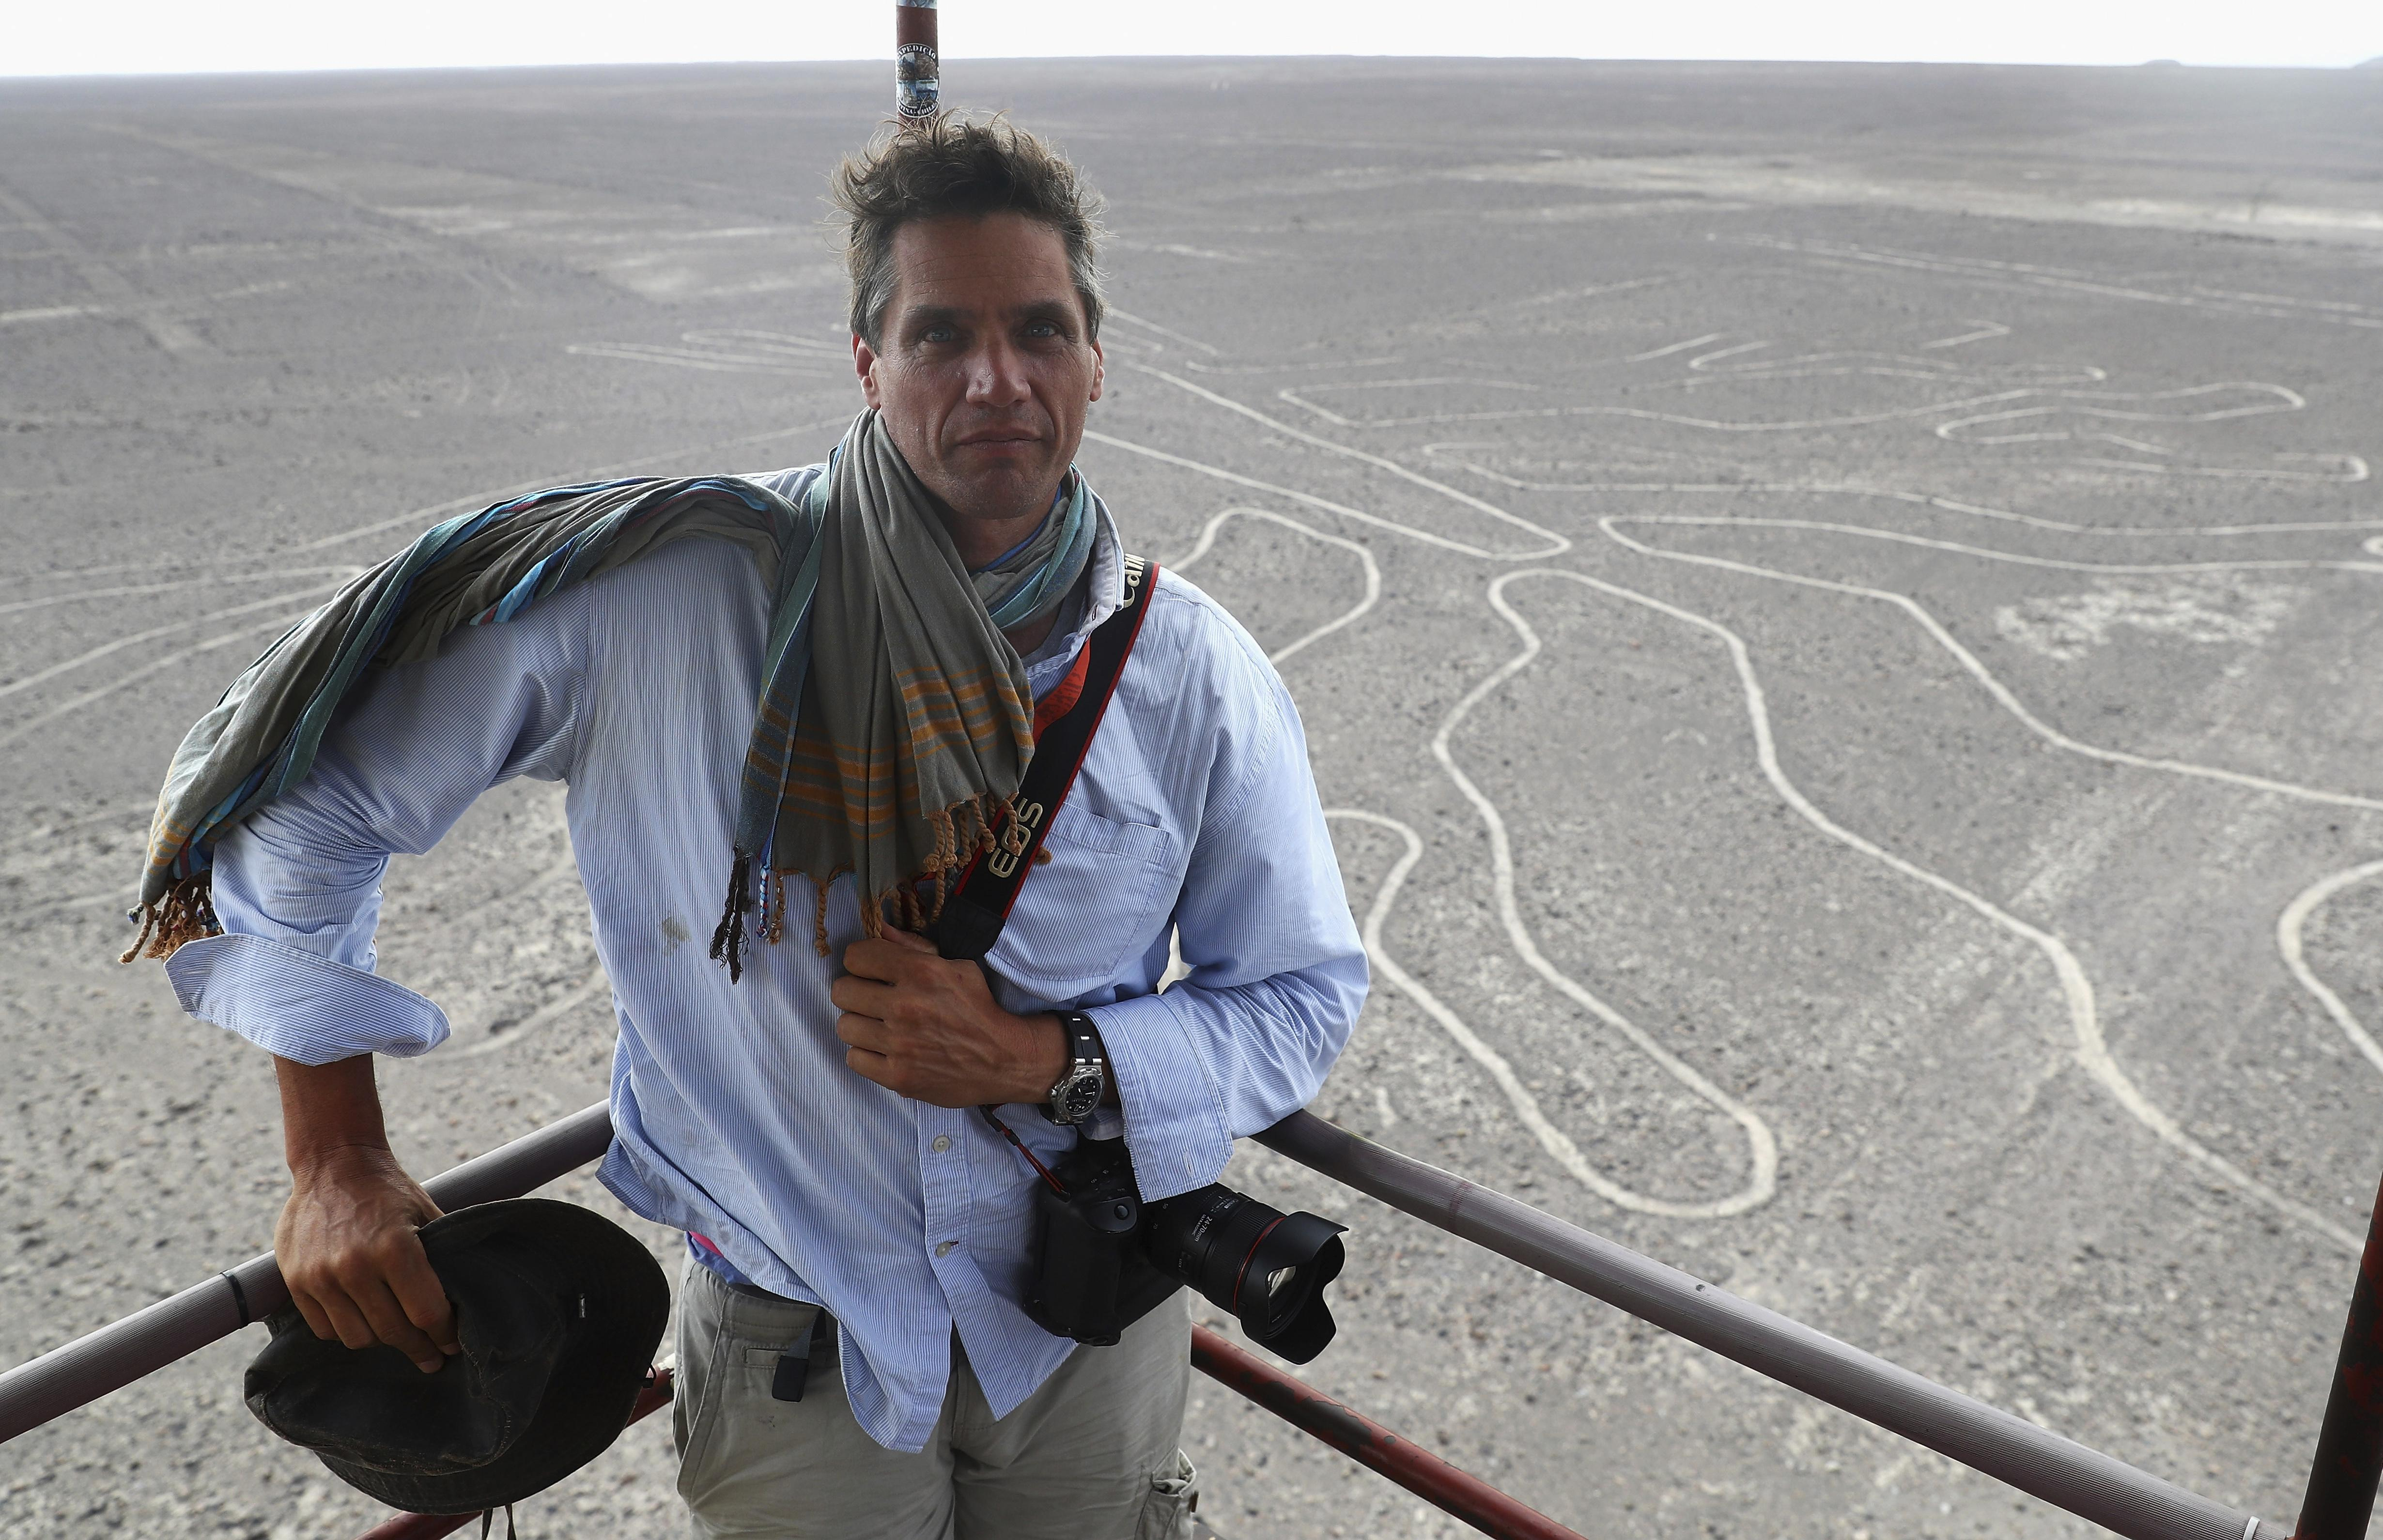 Ricardo Mazalan to head AP's photo coverage in Latin America